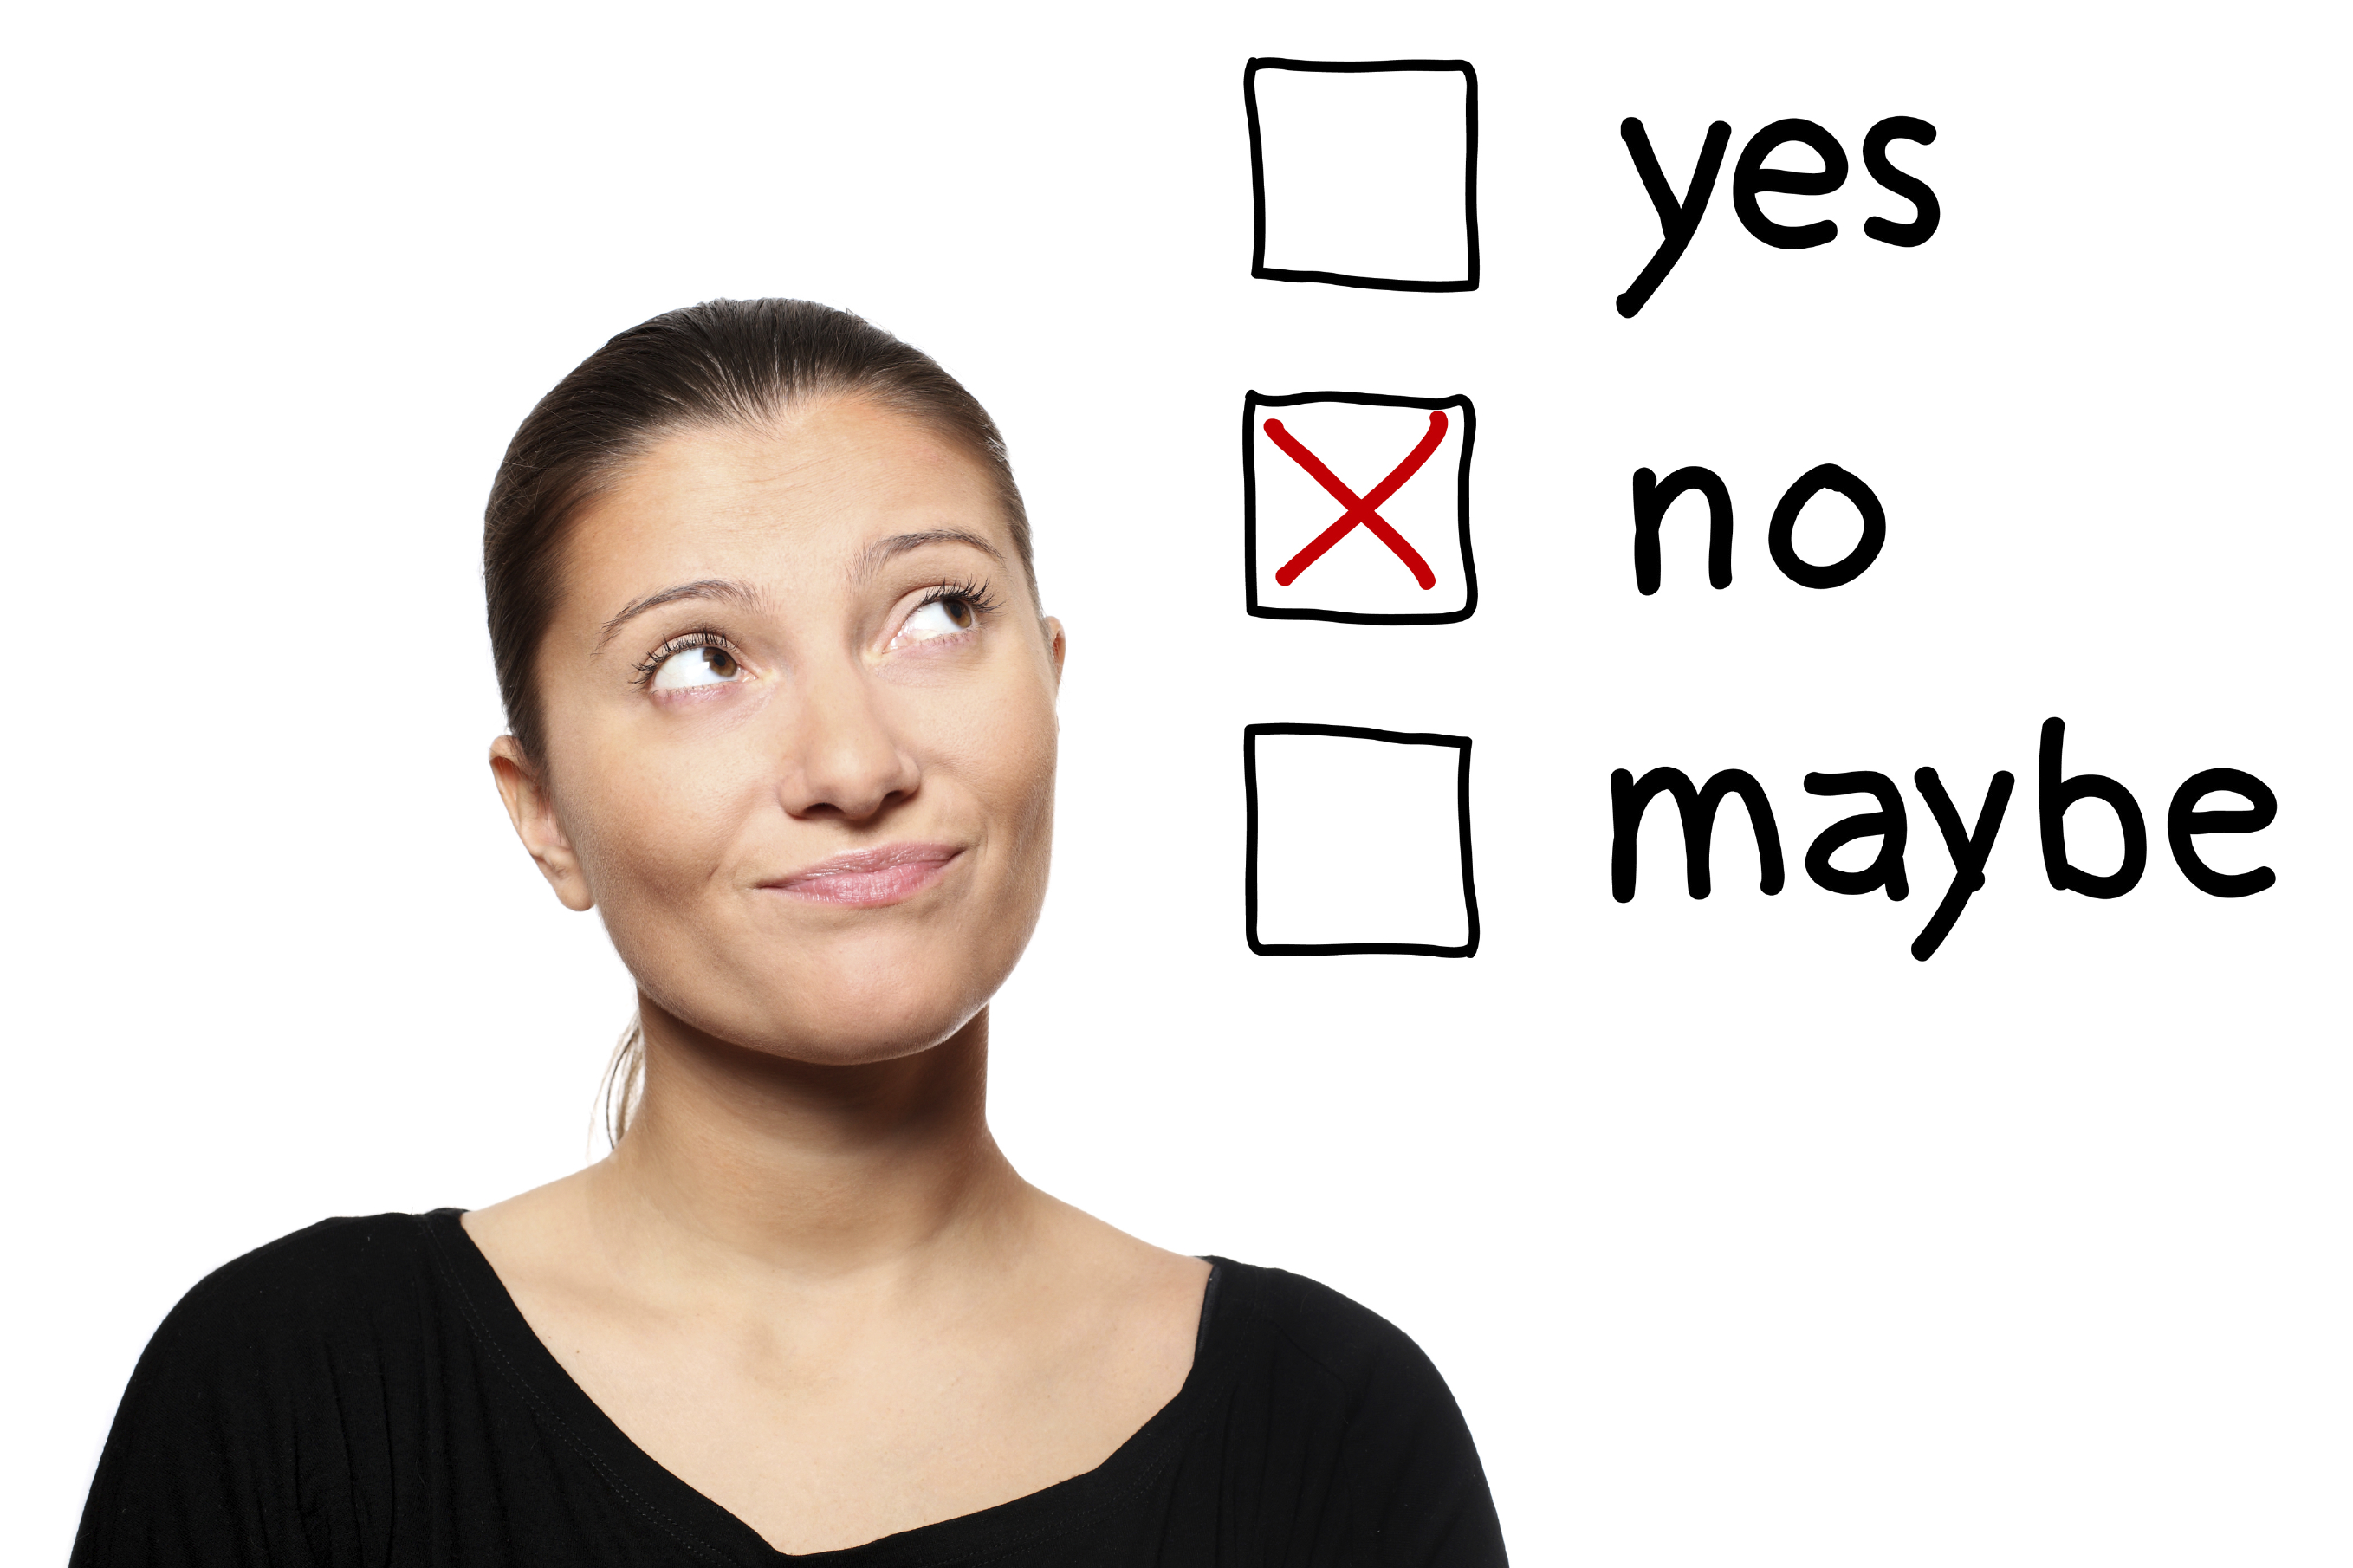 Be Productive by Saying No - The 1 Thing